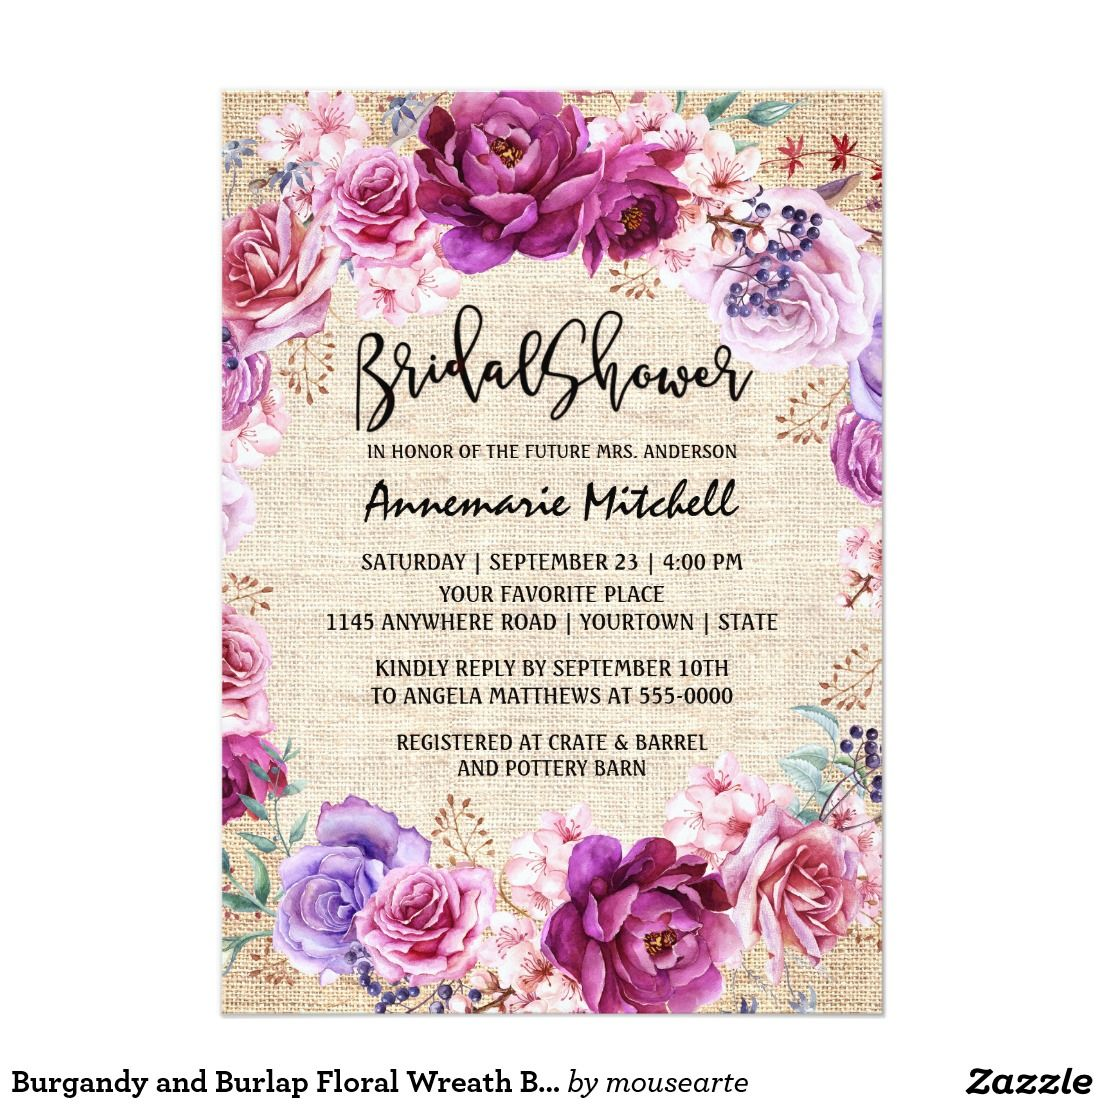 Burgandy and Burlap Floral Wreath Bridal Shower 5x7 Paper Invitations. Artwork designed by MouseArte Designs